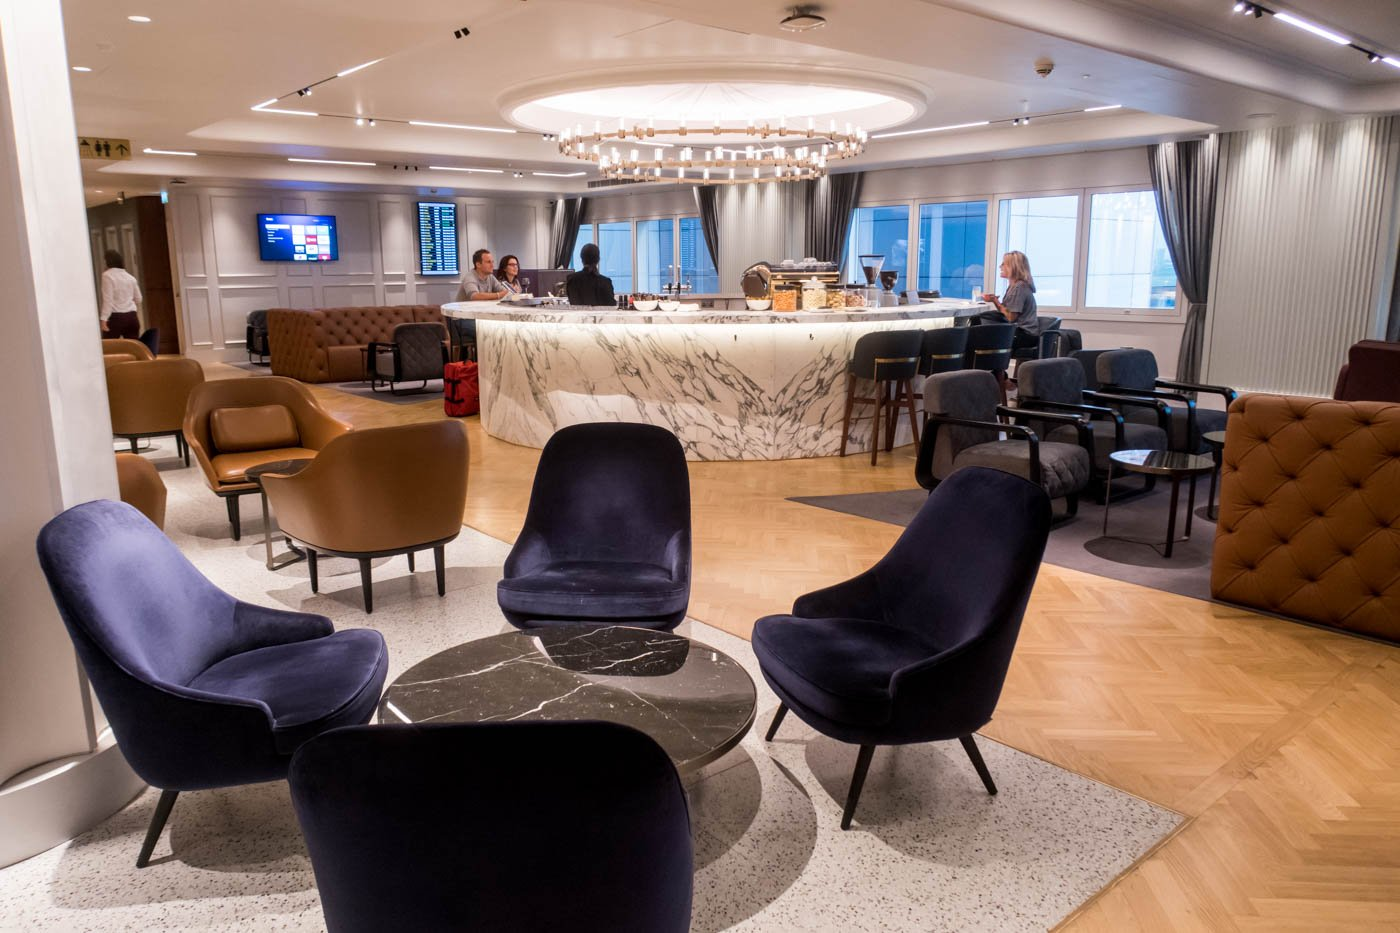 The Qantas London Lounge Upper Level Seating